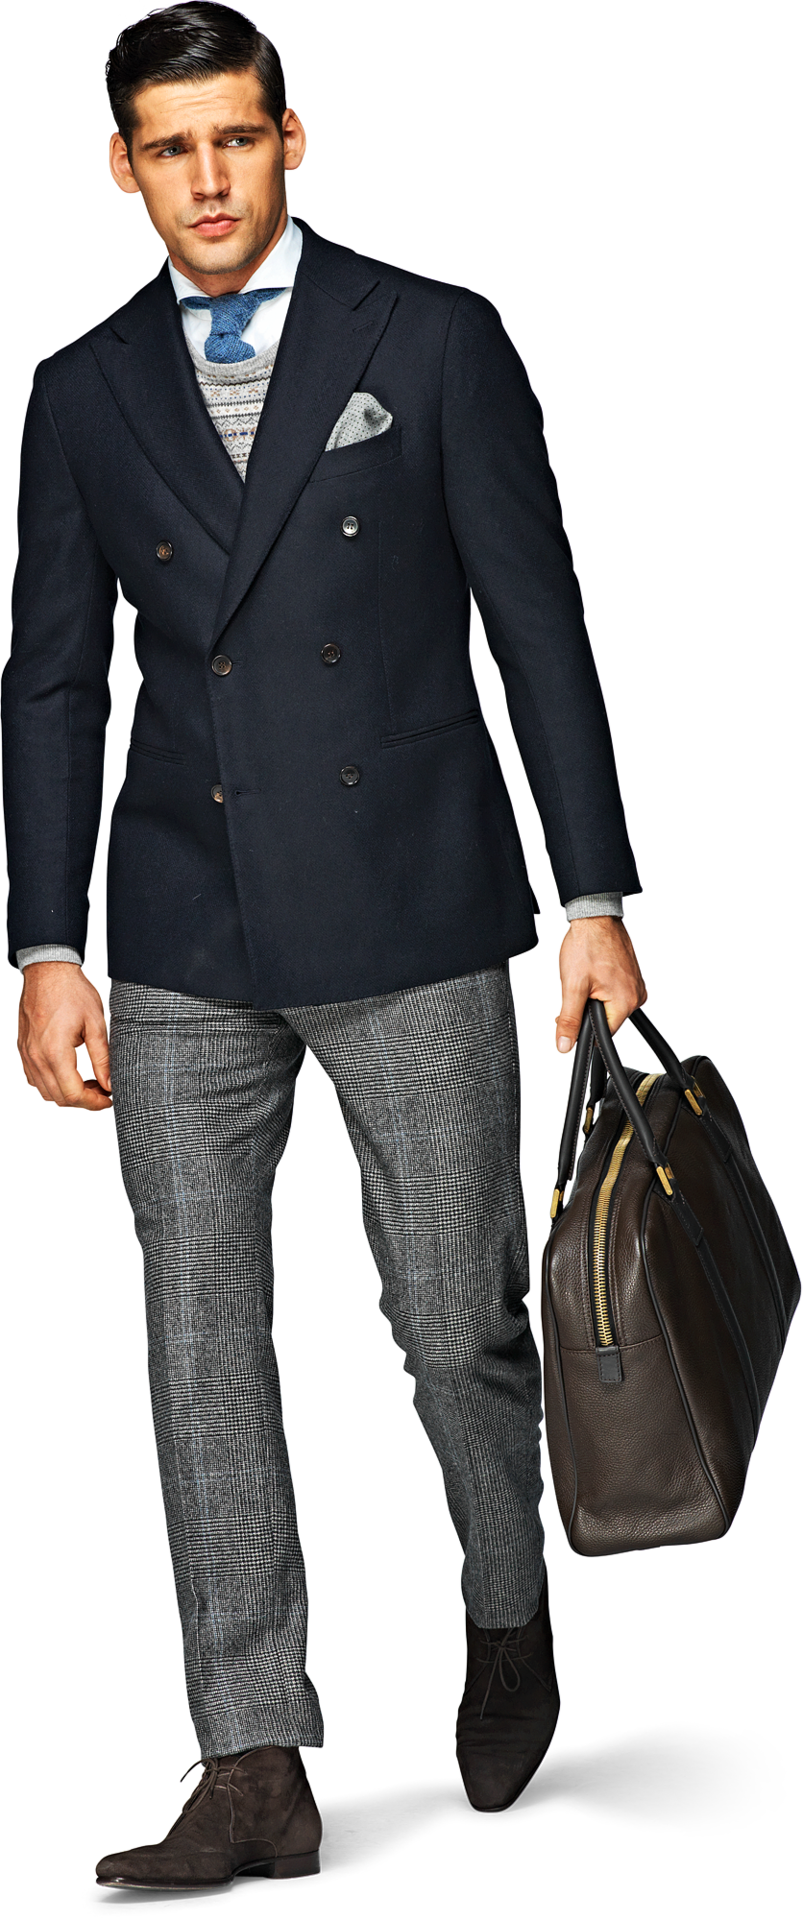 Man In Suit Png image #9476